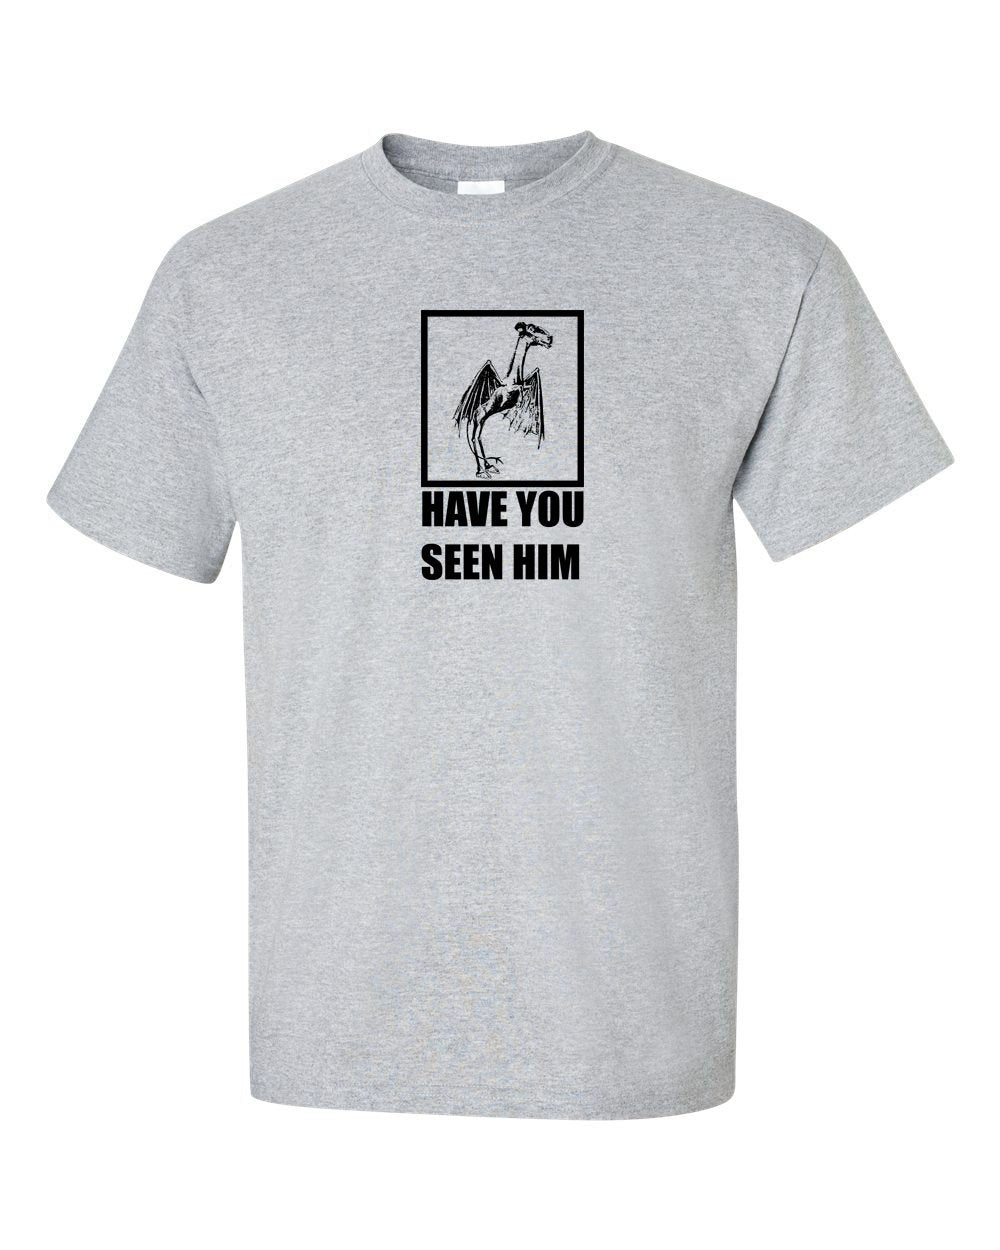 Have You Seen Him? Mens/Unisex T-Shirt